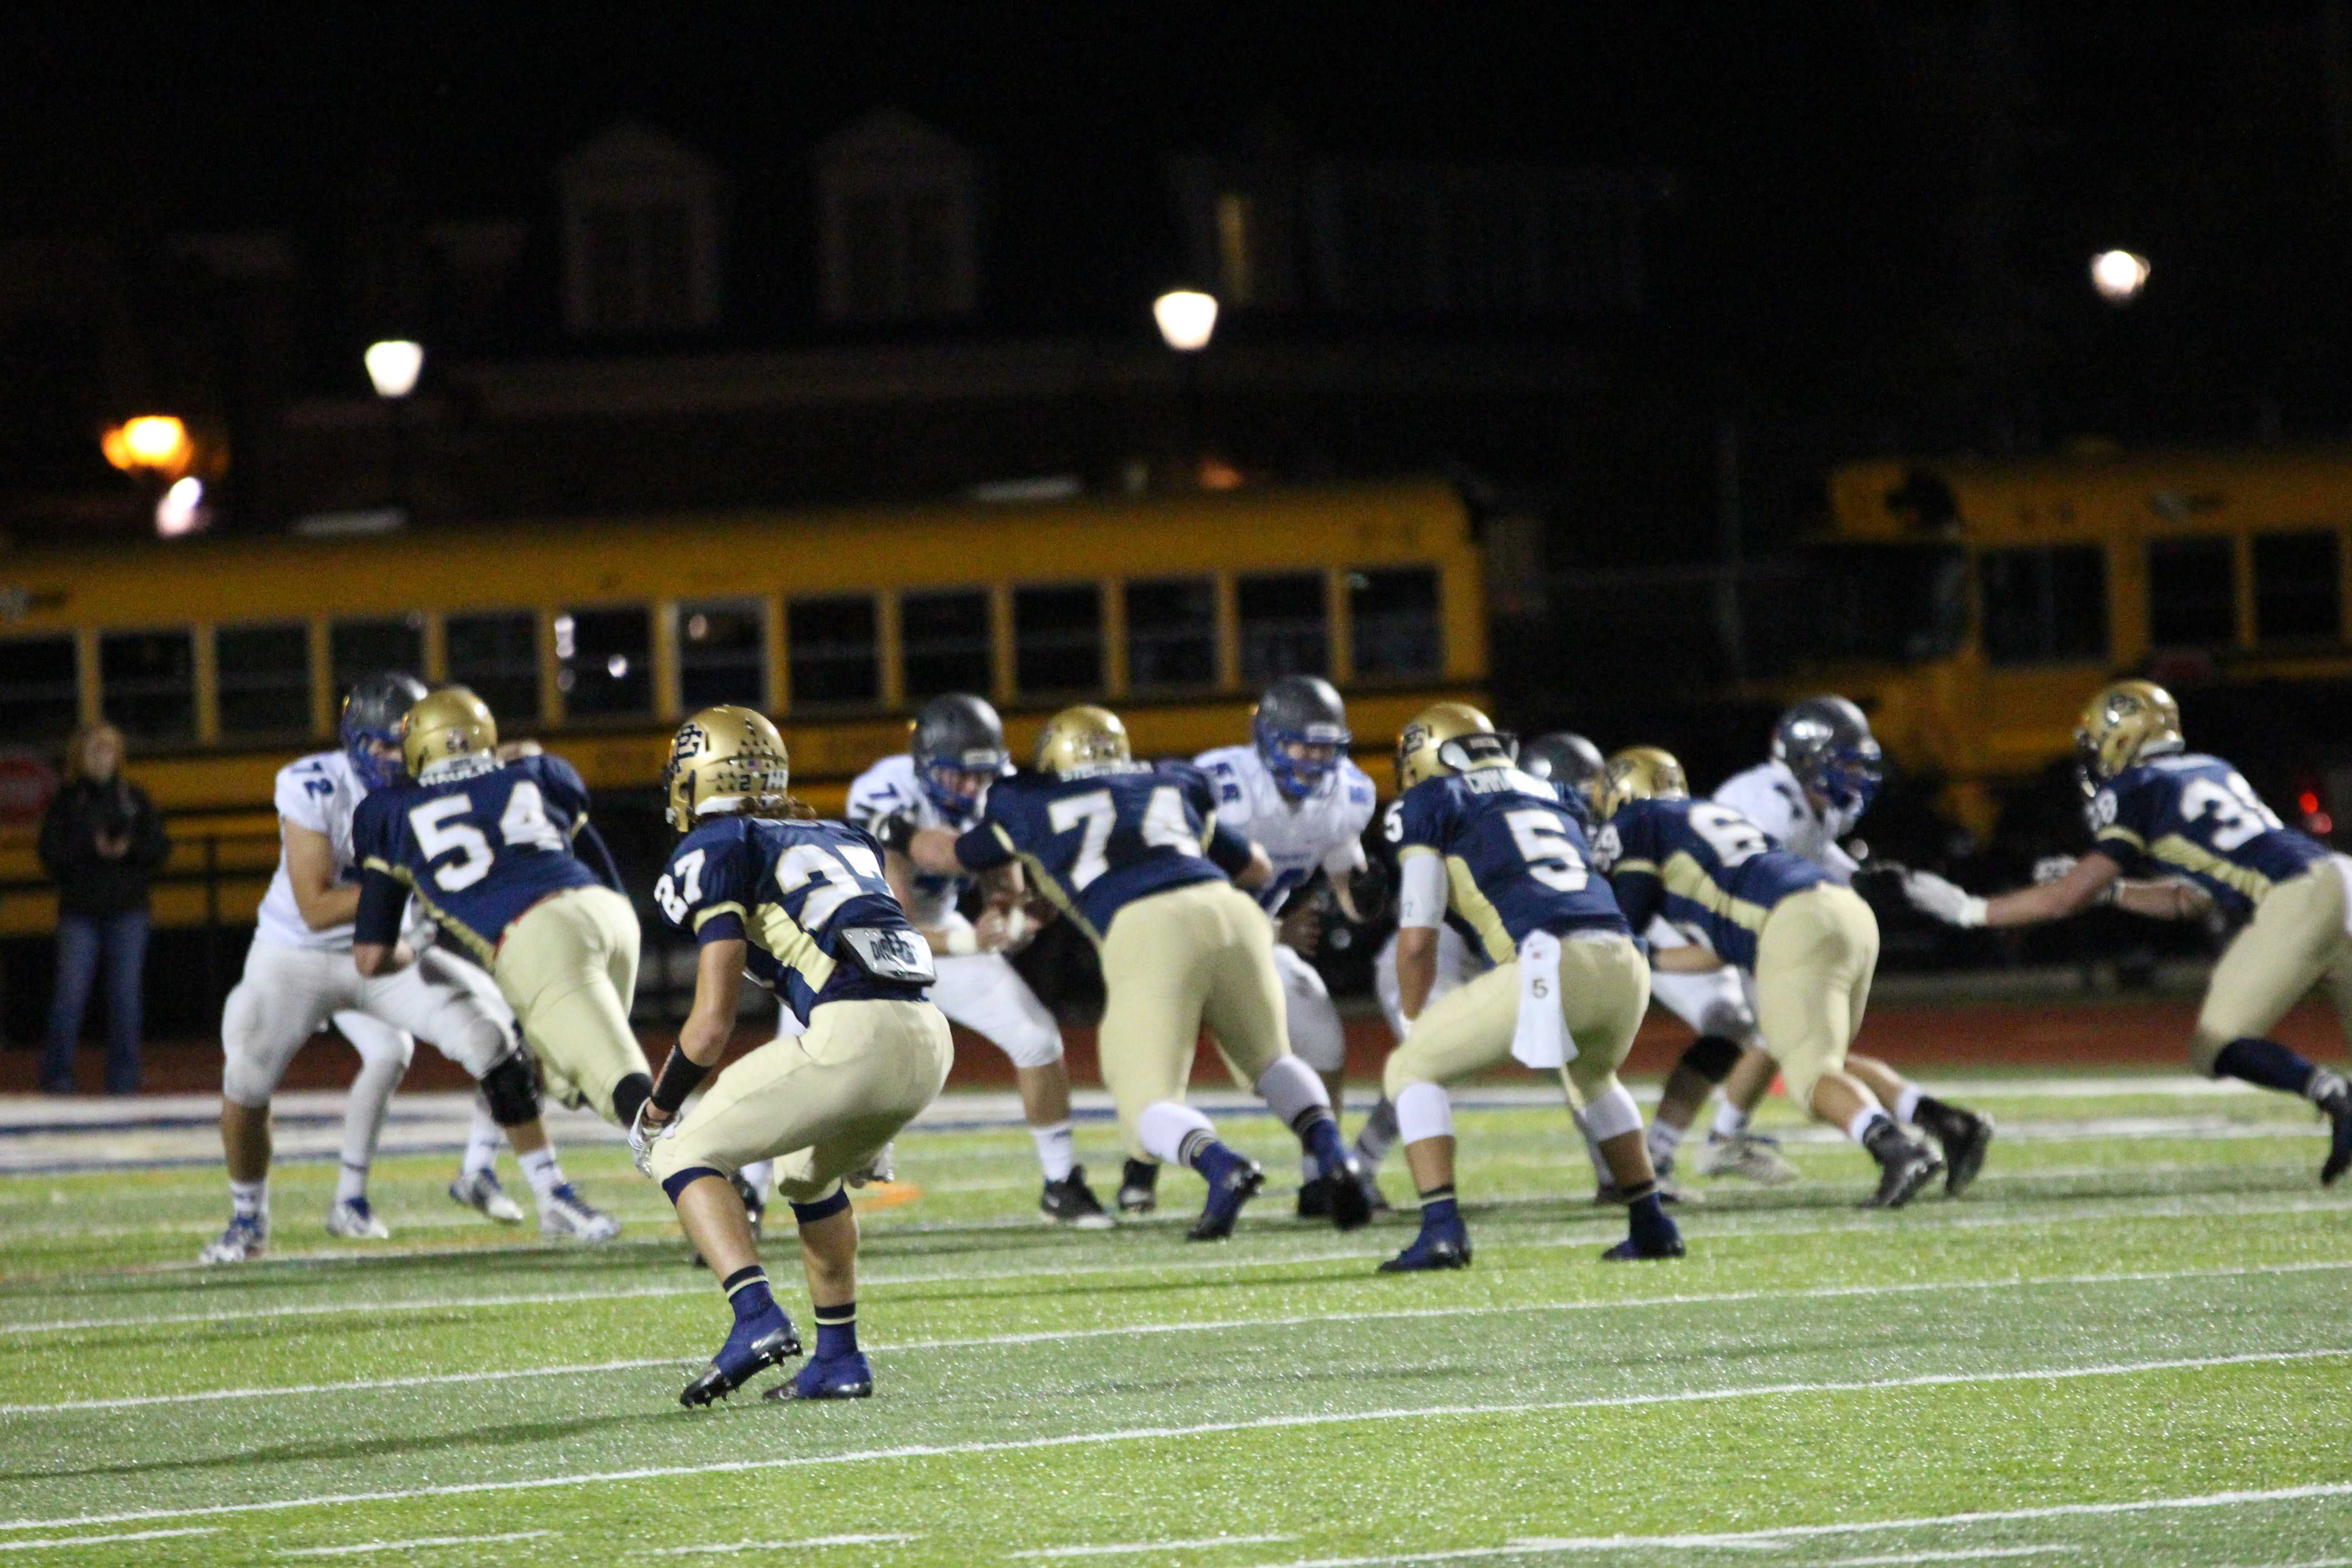 The South Varsity Football team has advanced to the playoffs this year.  The playoff game will be held on Oct. 30 in Sterling Heights.